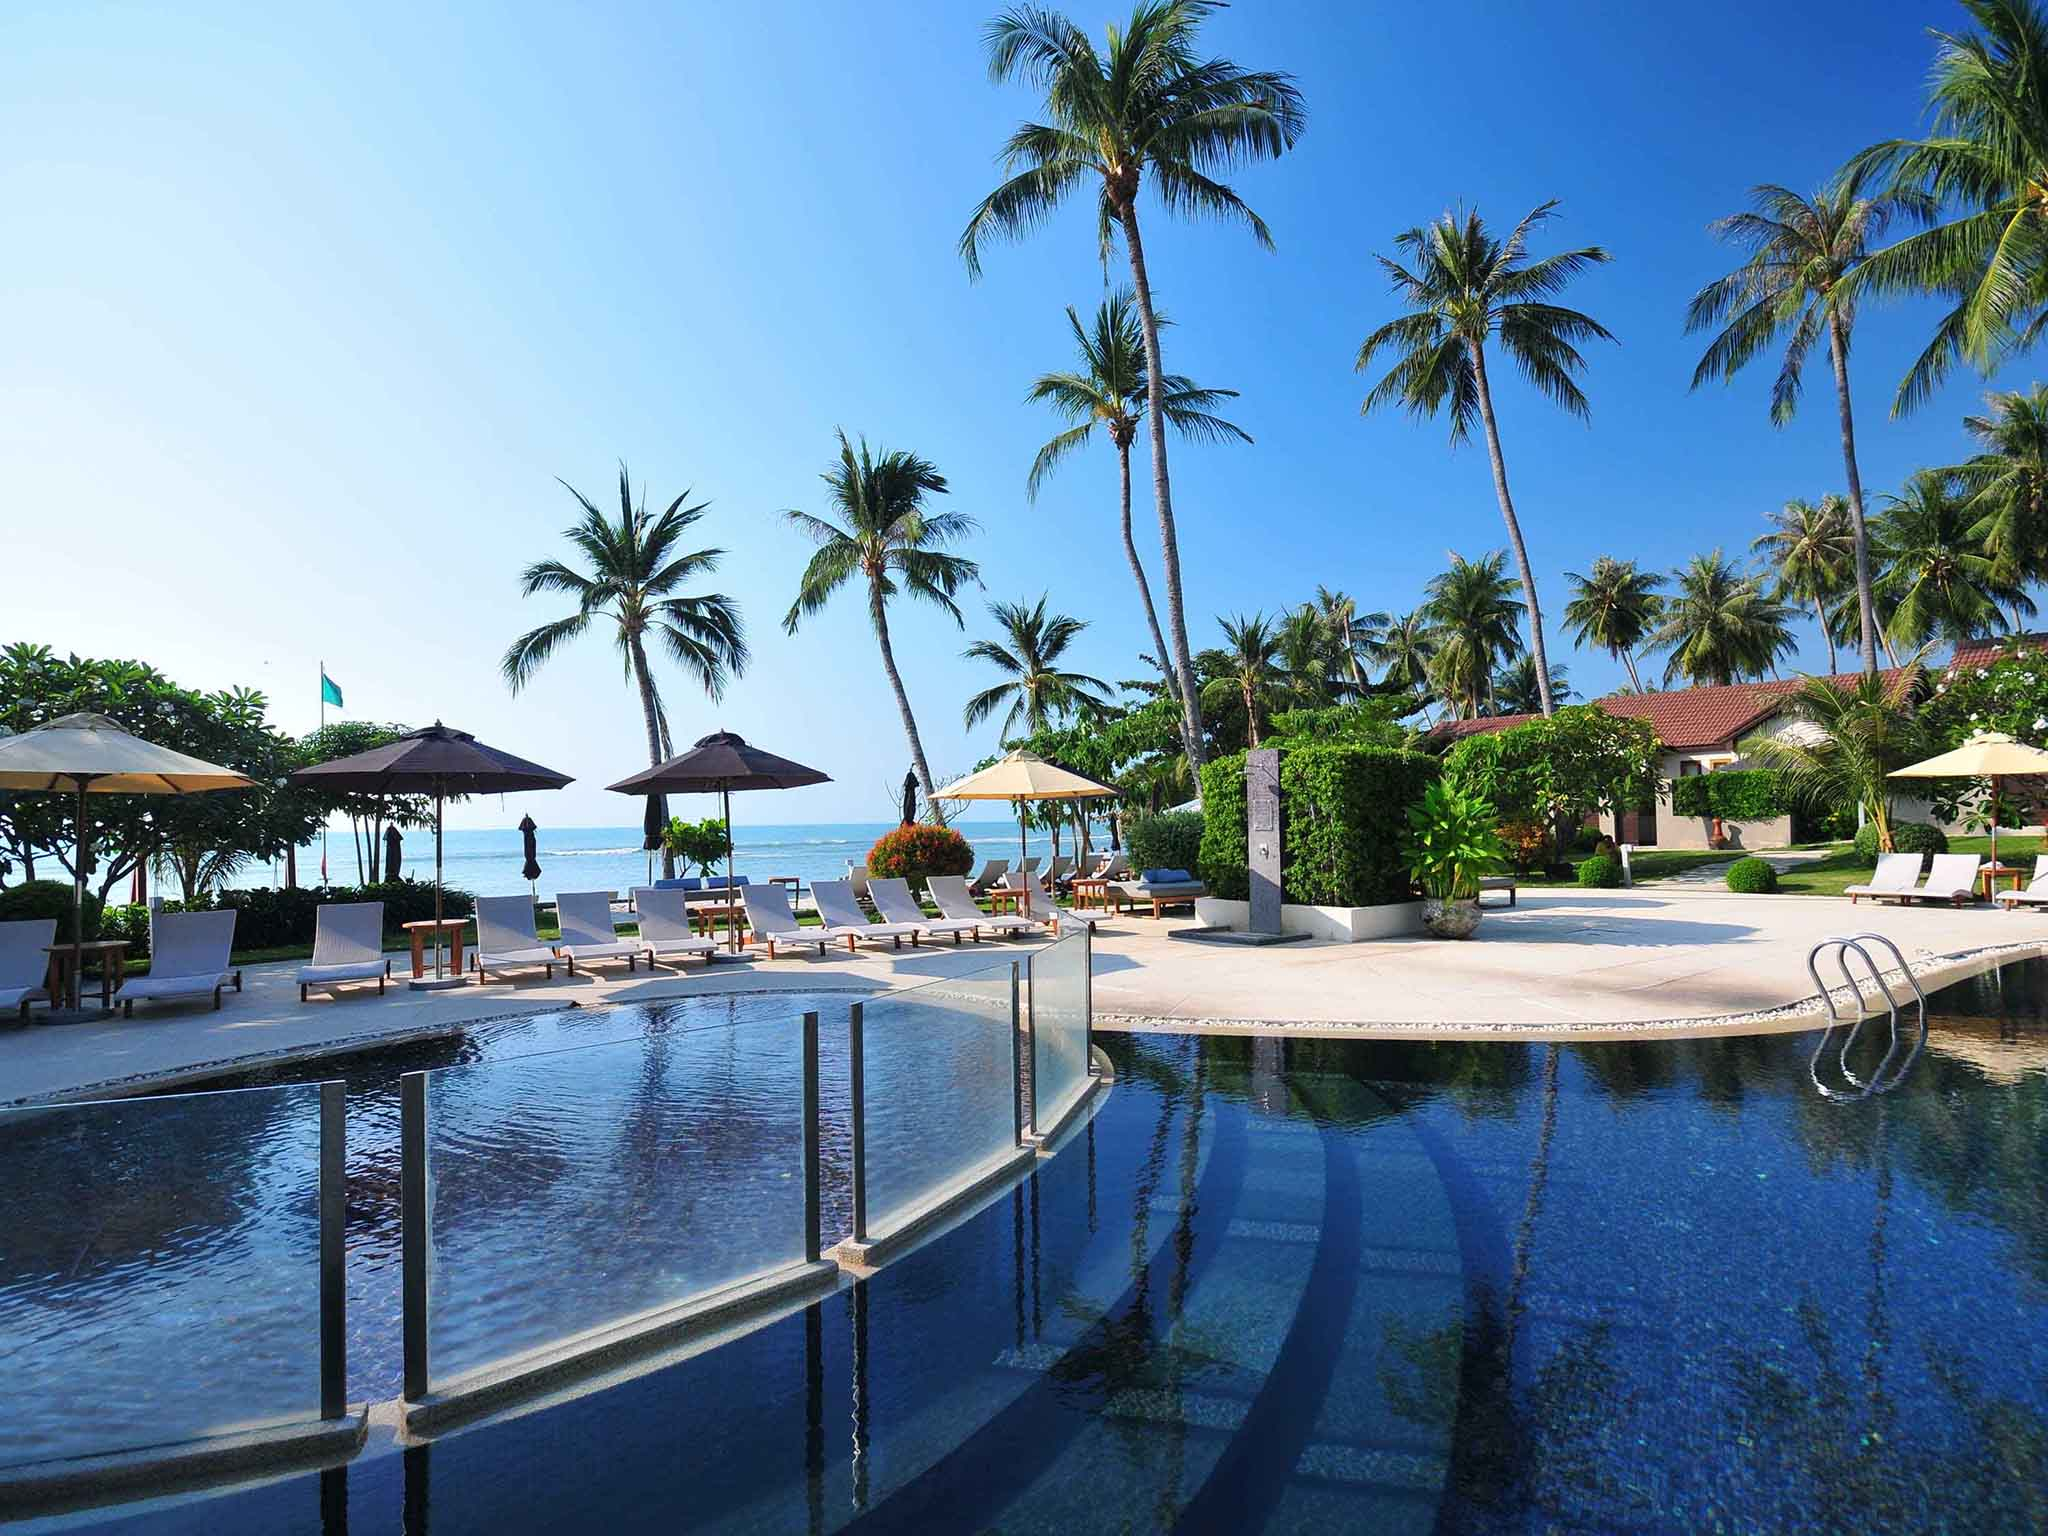 Hotel – Mercure Koh Samui Beach Resort